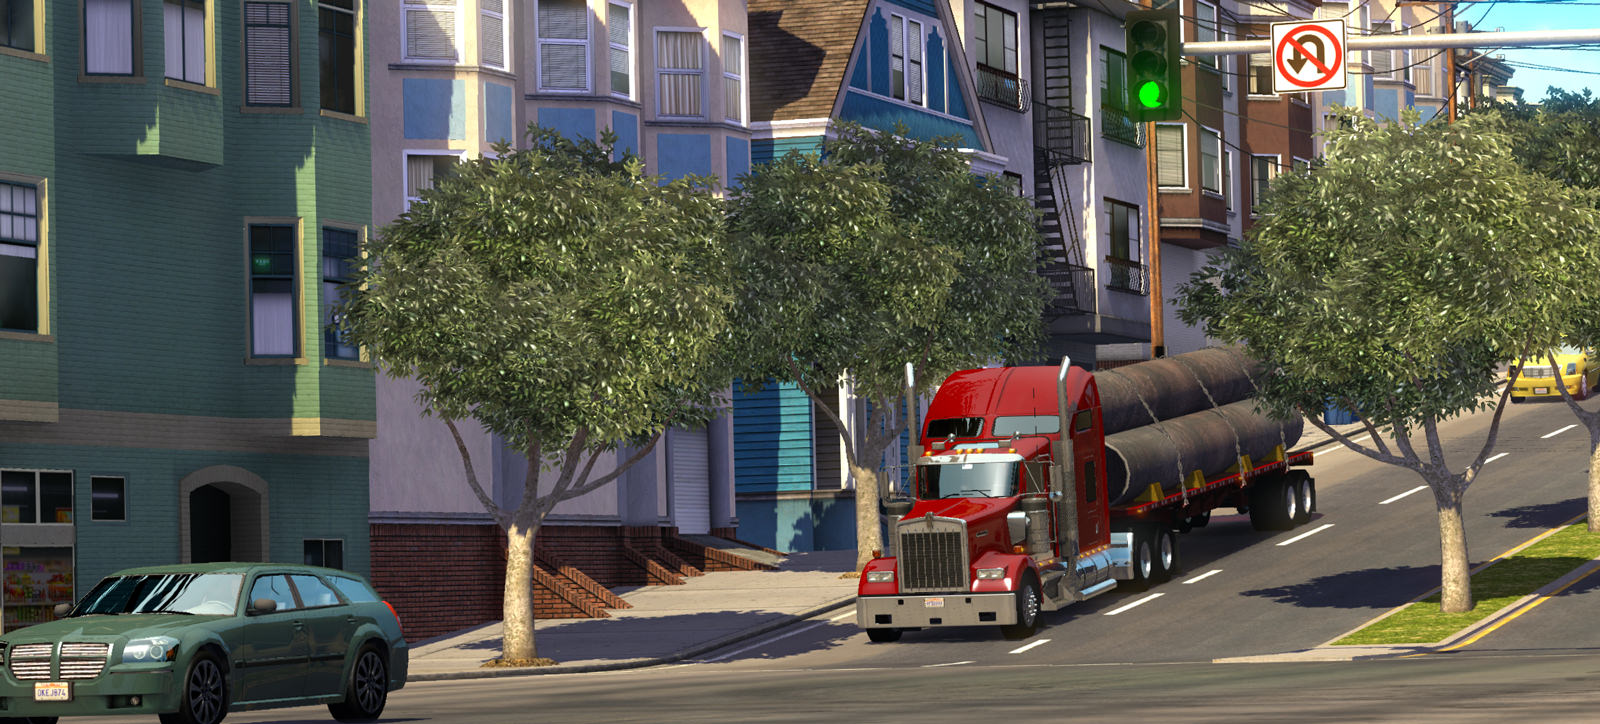 ats-big-city-02